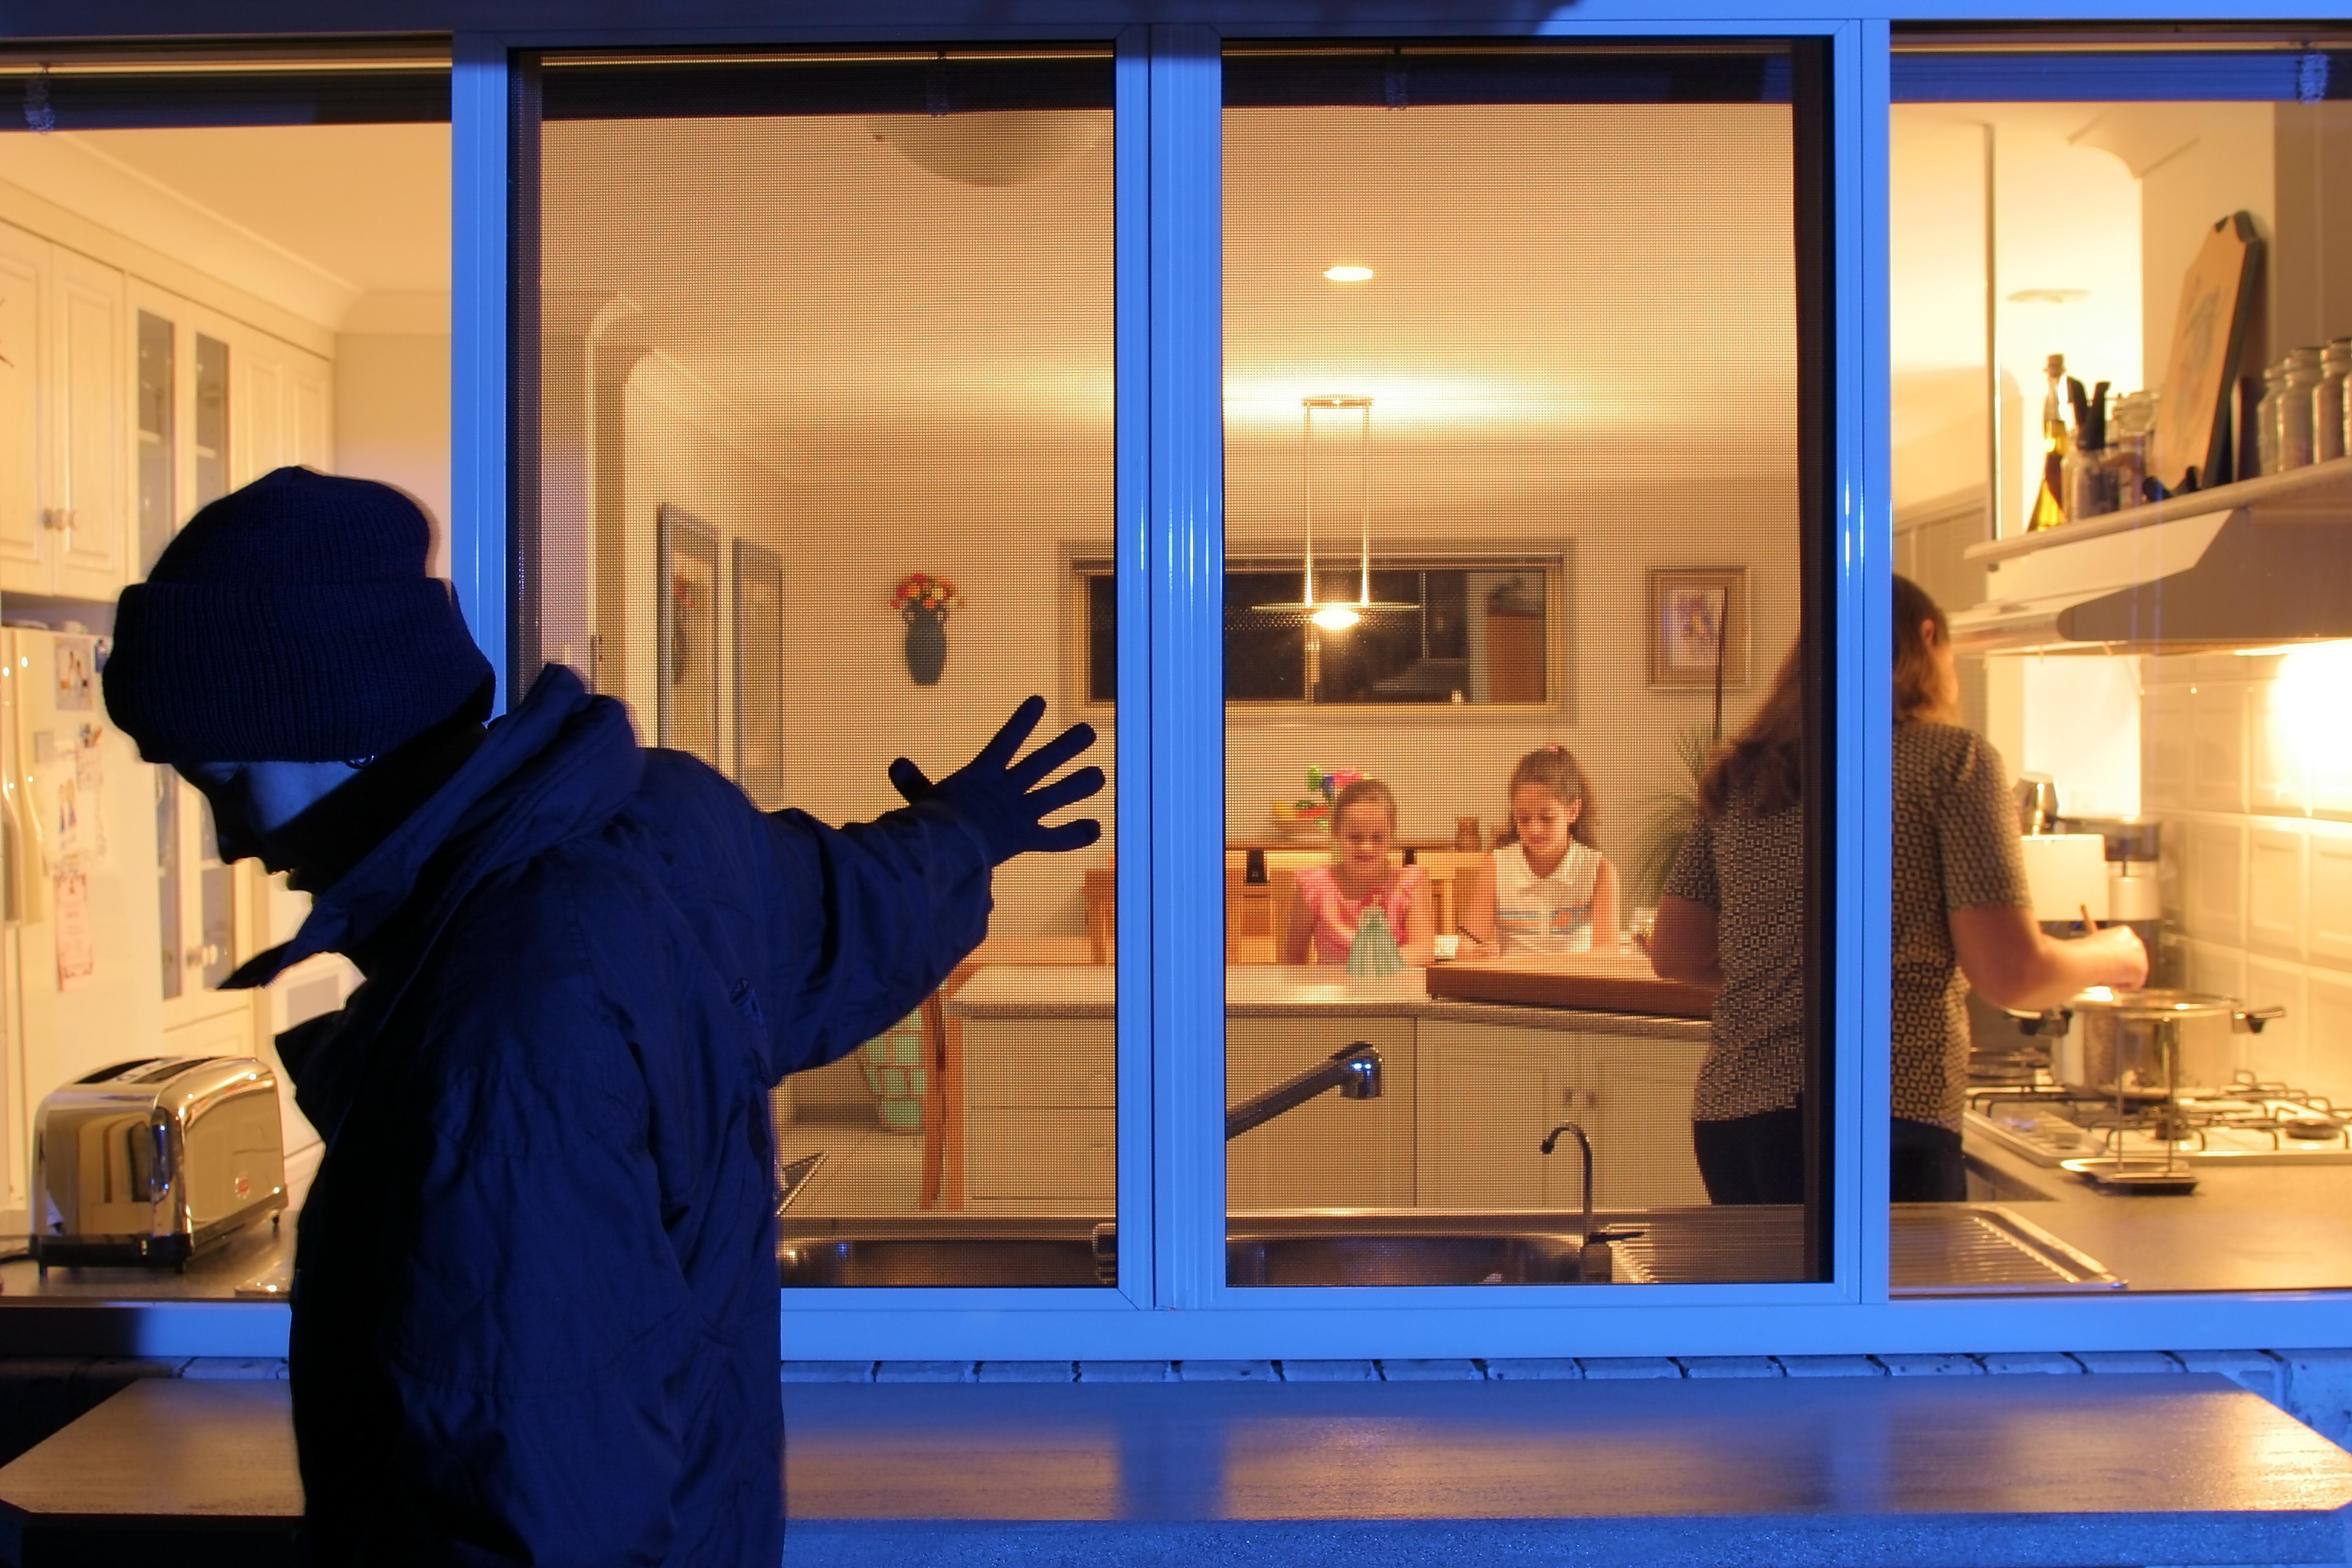 2048 #BA9C11  2013 Home Security Tips How To Keep Your Home Safe 0 Comments picture/photo How To Protect Sliding Glass Doors From Burglars 8193072